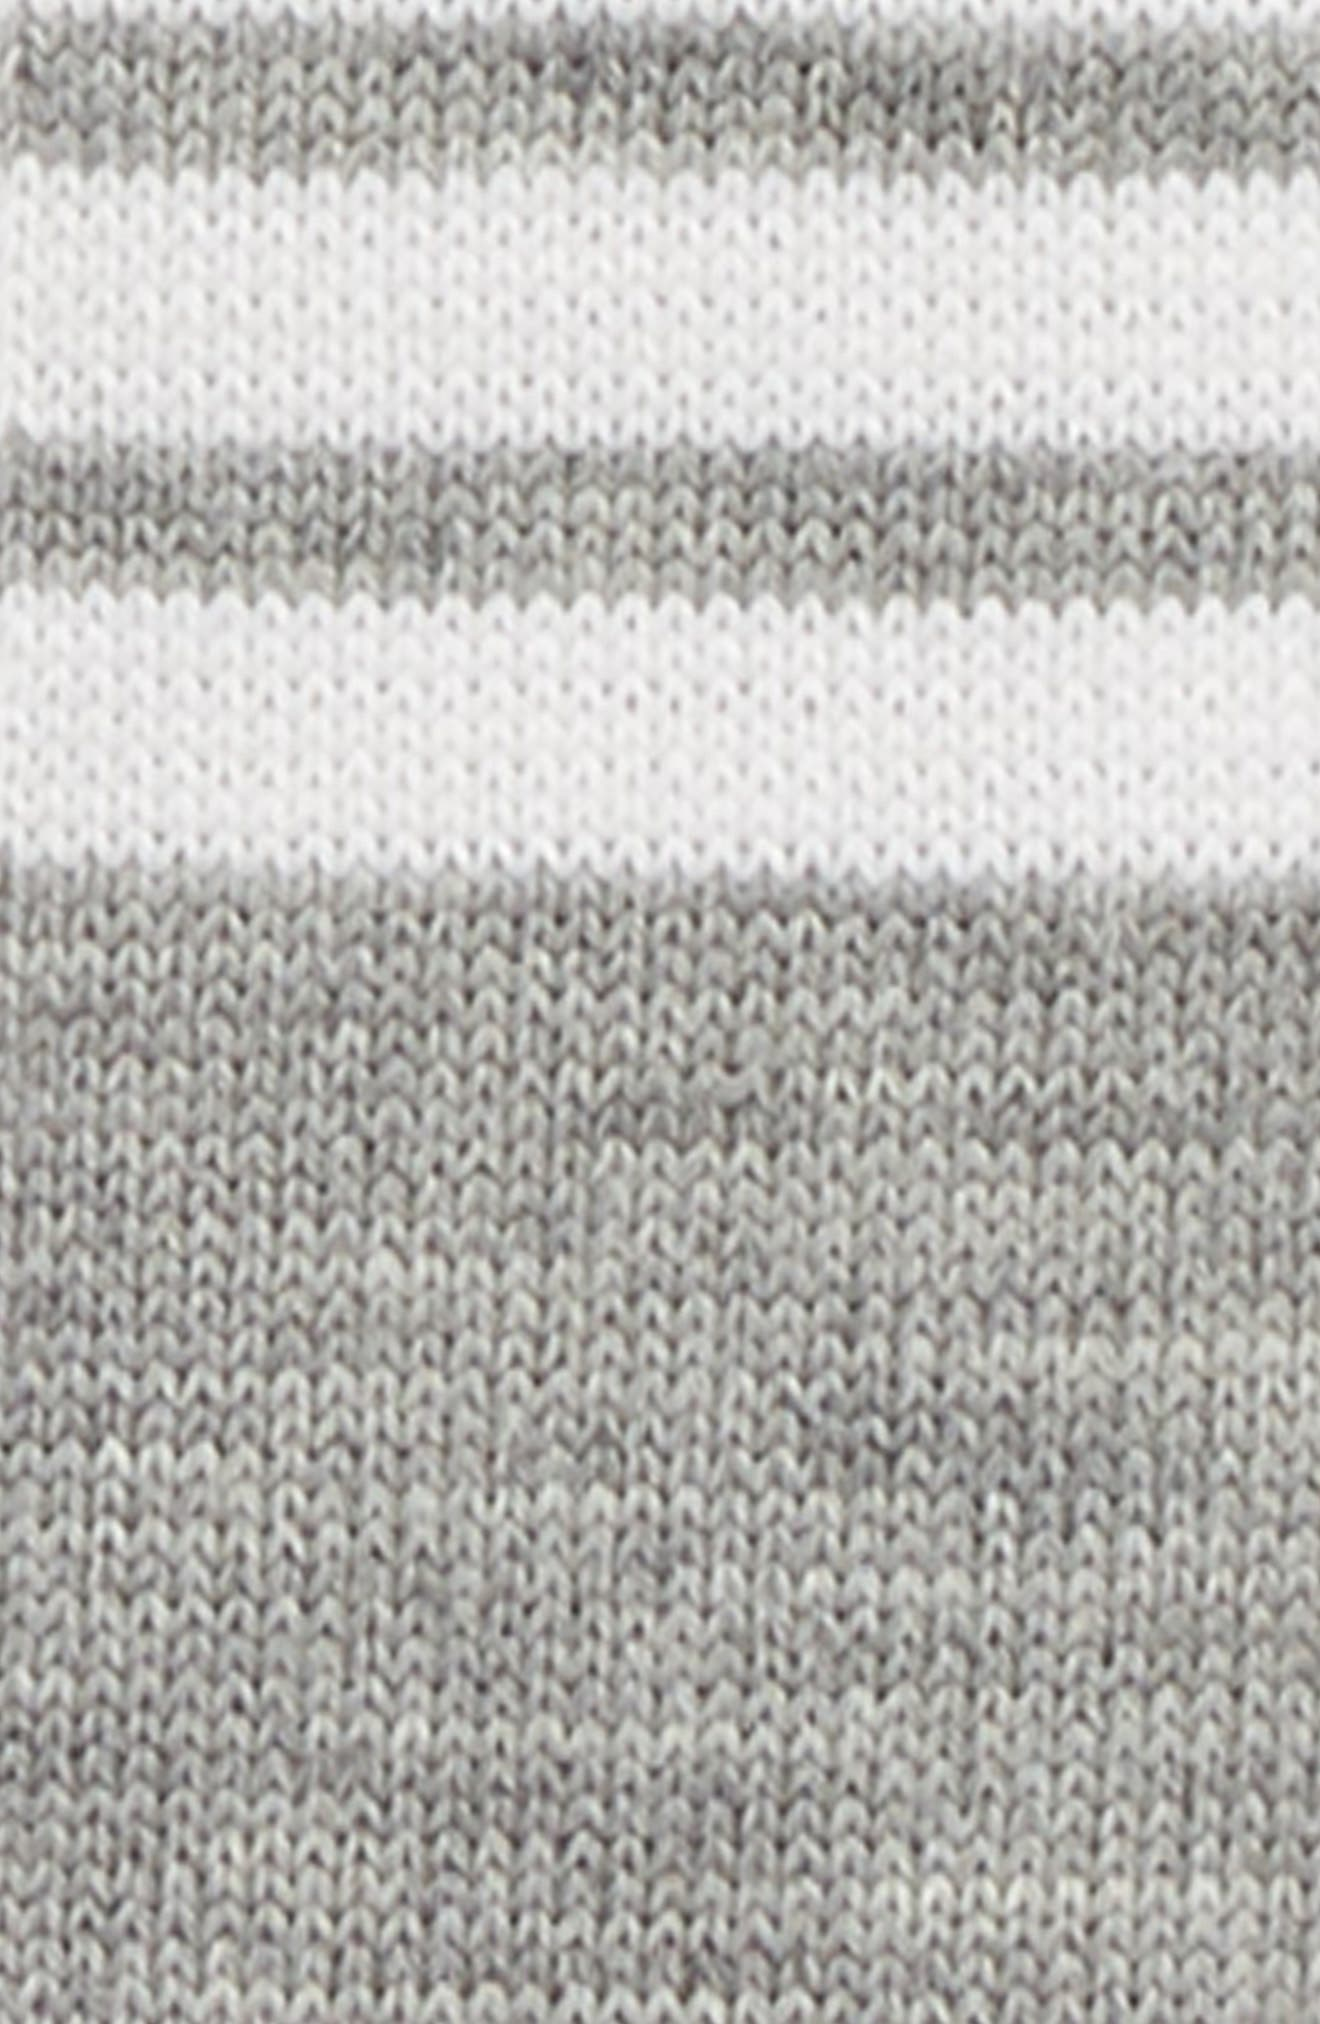 4-Bar Wool Knit Tie,                             Alternate thumbnail 2, color,                             Med Grey